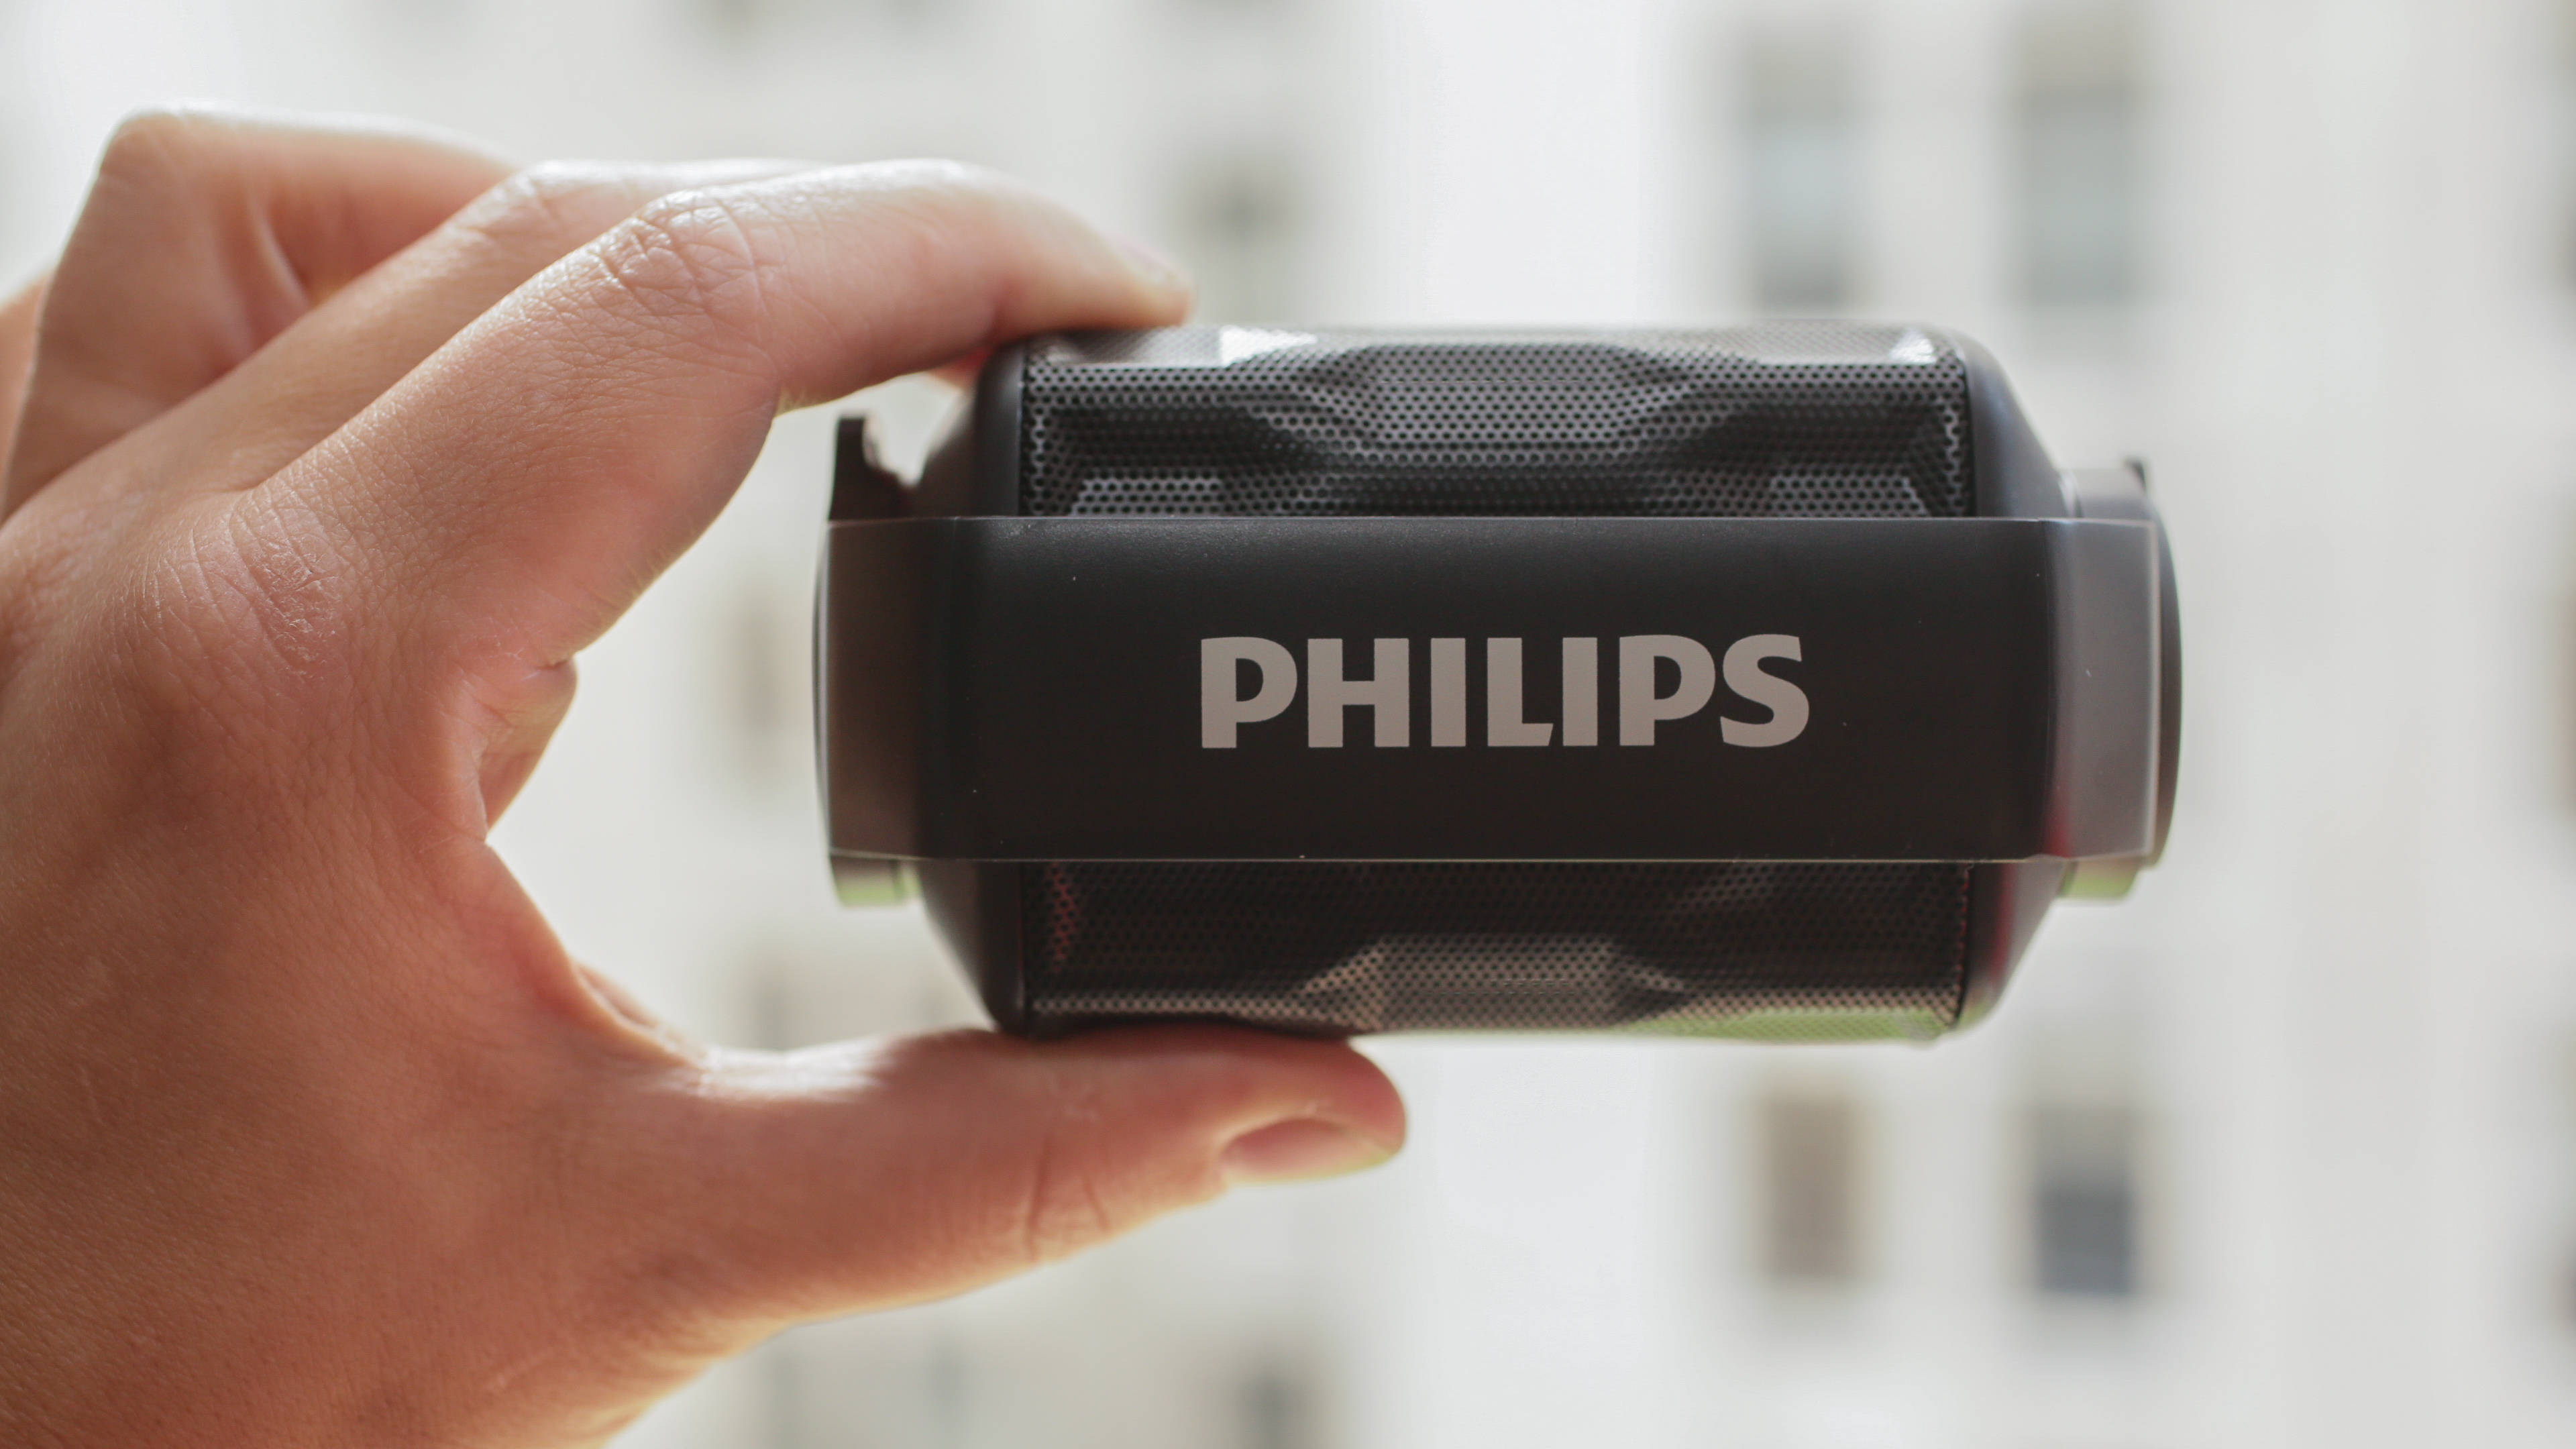 philips-shoqbox-mini-01.jpg